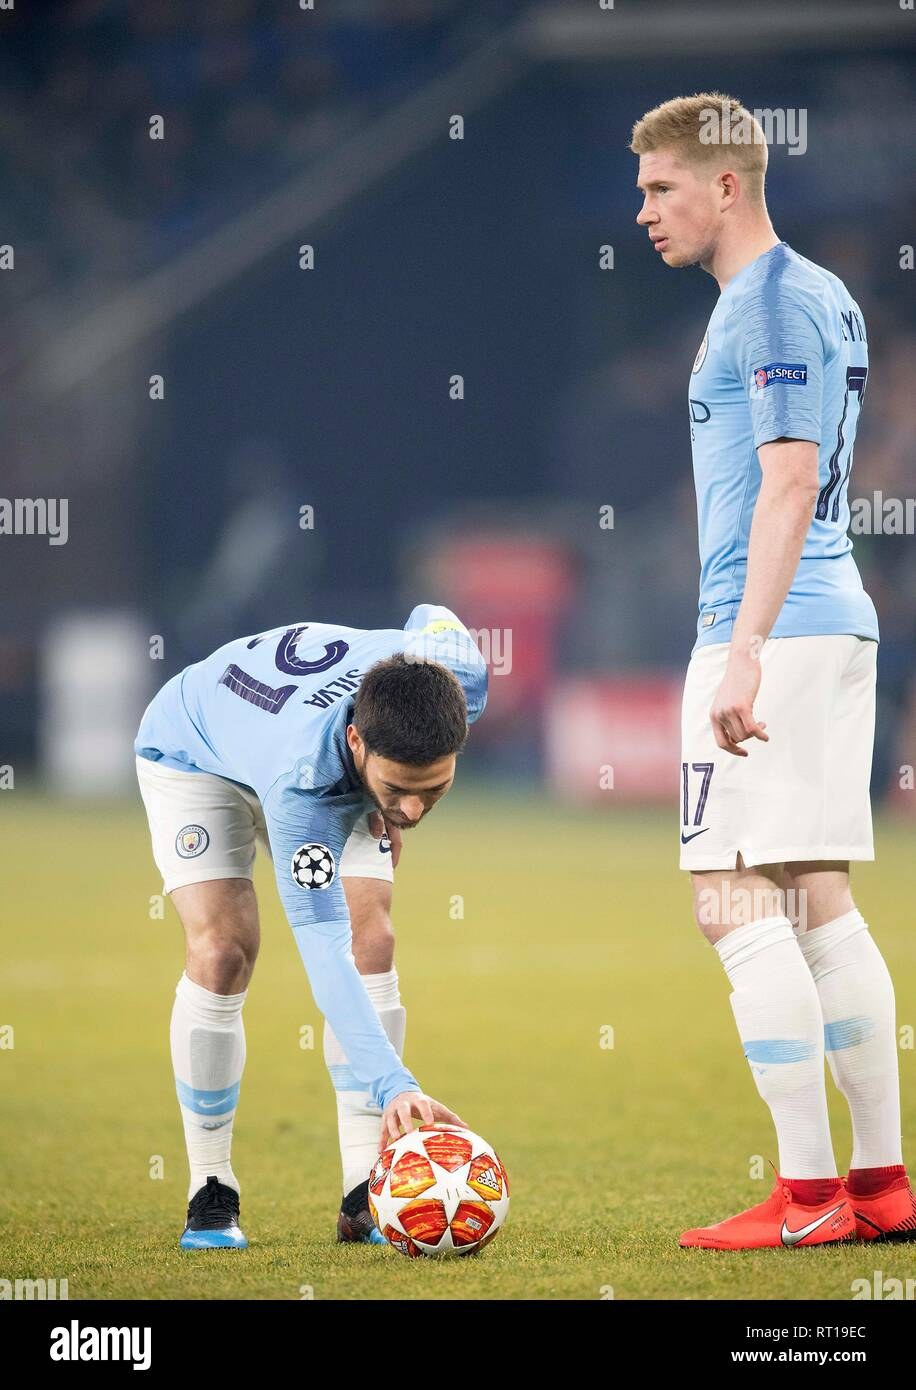 Gelsenkirchen, Deutschland. 20th Feb, 2019. David SILVA l. (ManCity) and Kevin DE BRUYNE (ManCity) in the free kick, Action, Football Champions League Eighth Final First Leg, FC Schalke 04 (GE) - Manchester City (ManCity) 2: 3, on 20.02.2019 in Gelsenkirchen/Germany. © Sven Simon Photo Agency GmbH & Co. Press Photo KG # Prinzess-Luise-Str. 41 # 45479 M uelheim/Ruhr # Tel. 0208/9413250 # Fax. 0208/9413260 # GLS Bank # BLZ 430 609 67 # Kto. 4030 025 100 # IBAN DE75 4306 0967 4030 0251 00 # BIC GENODEM1GLS # www.svensimon.net. Credit: dpa/Alamy Live News Stock Photo